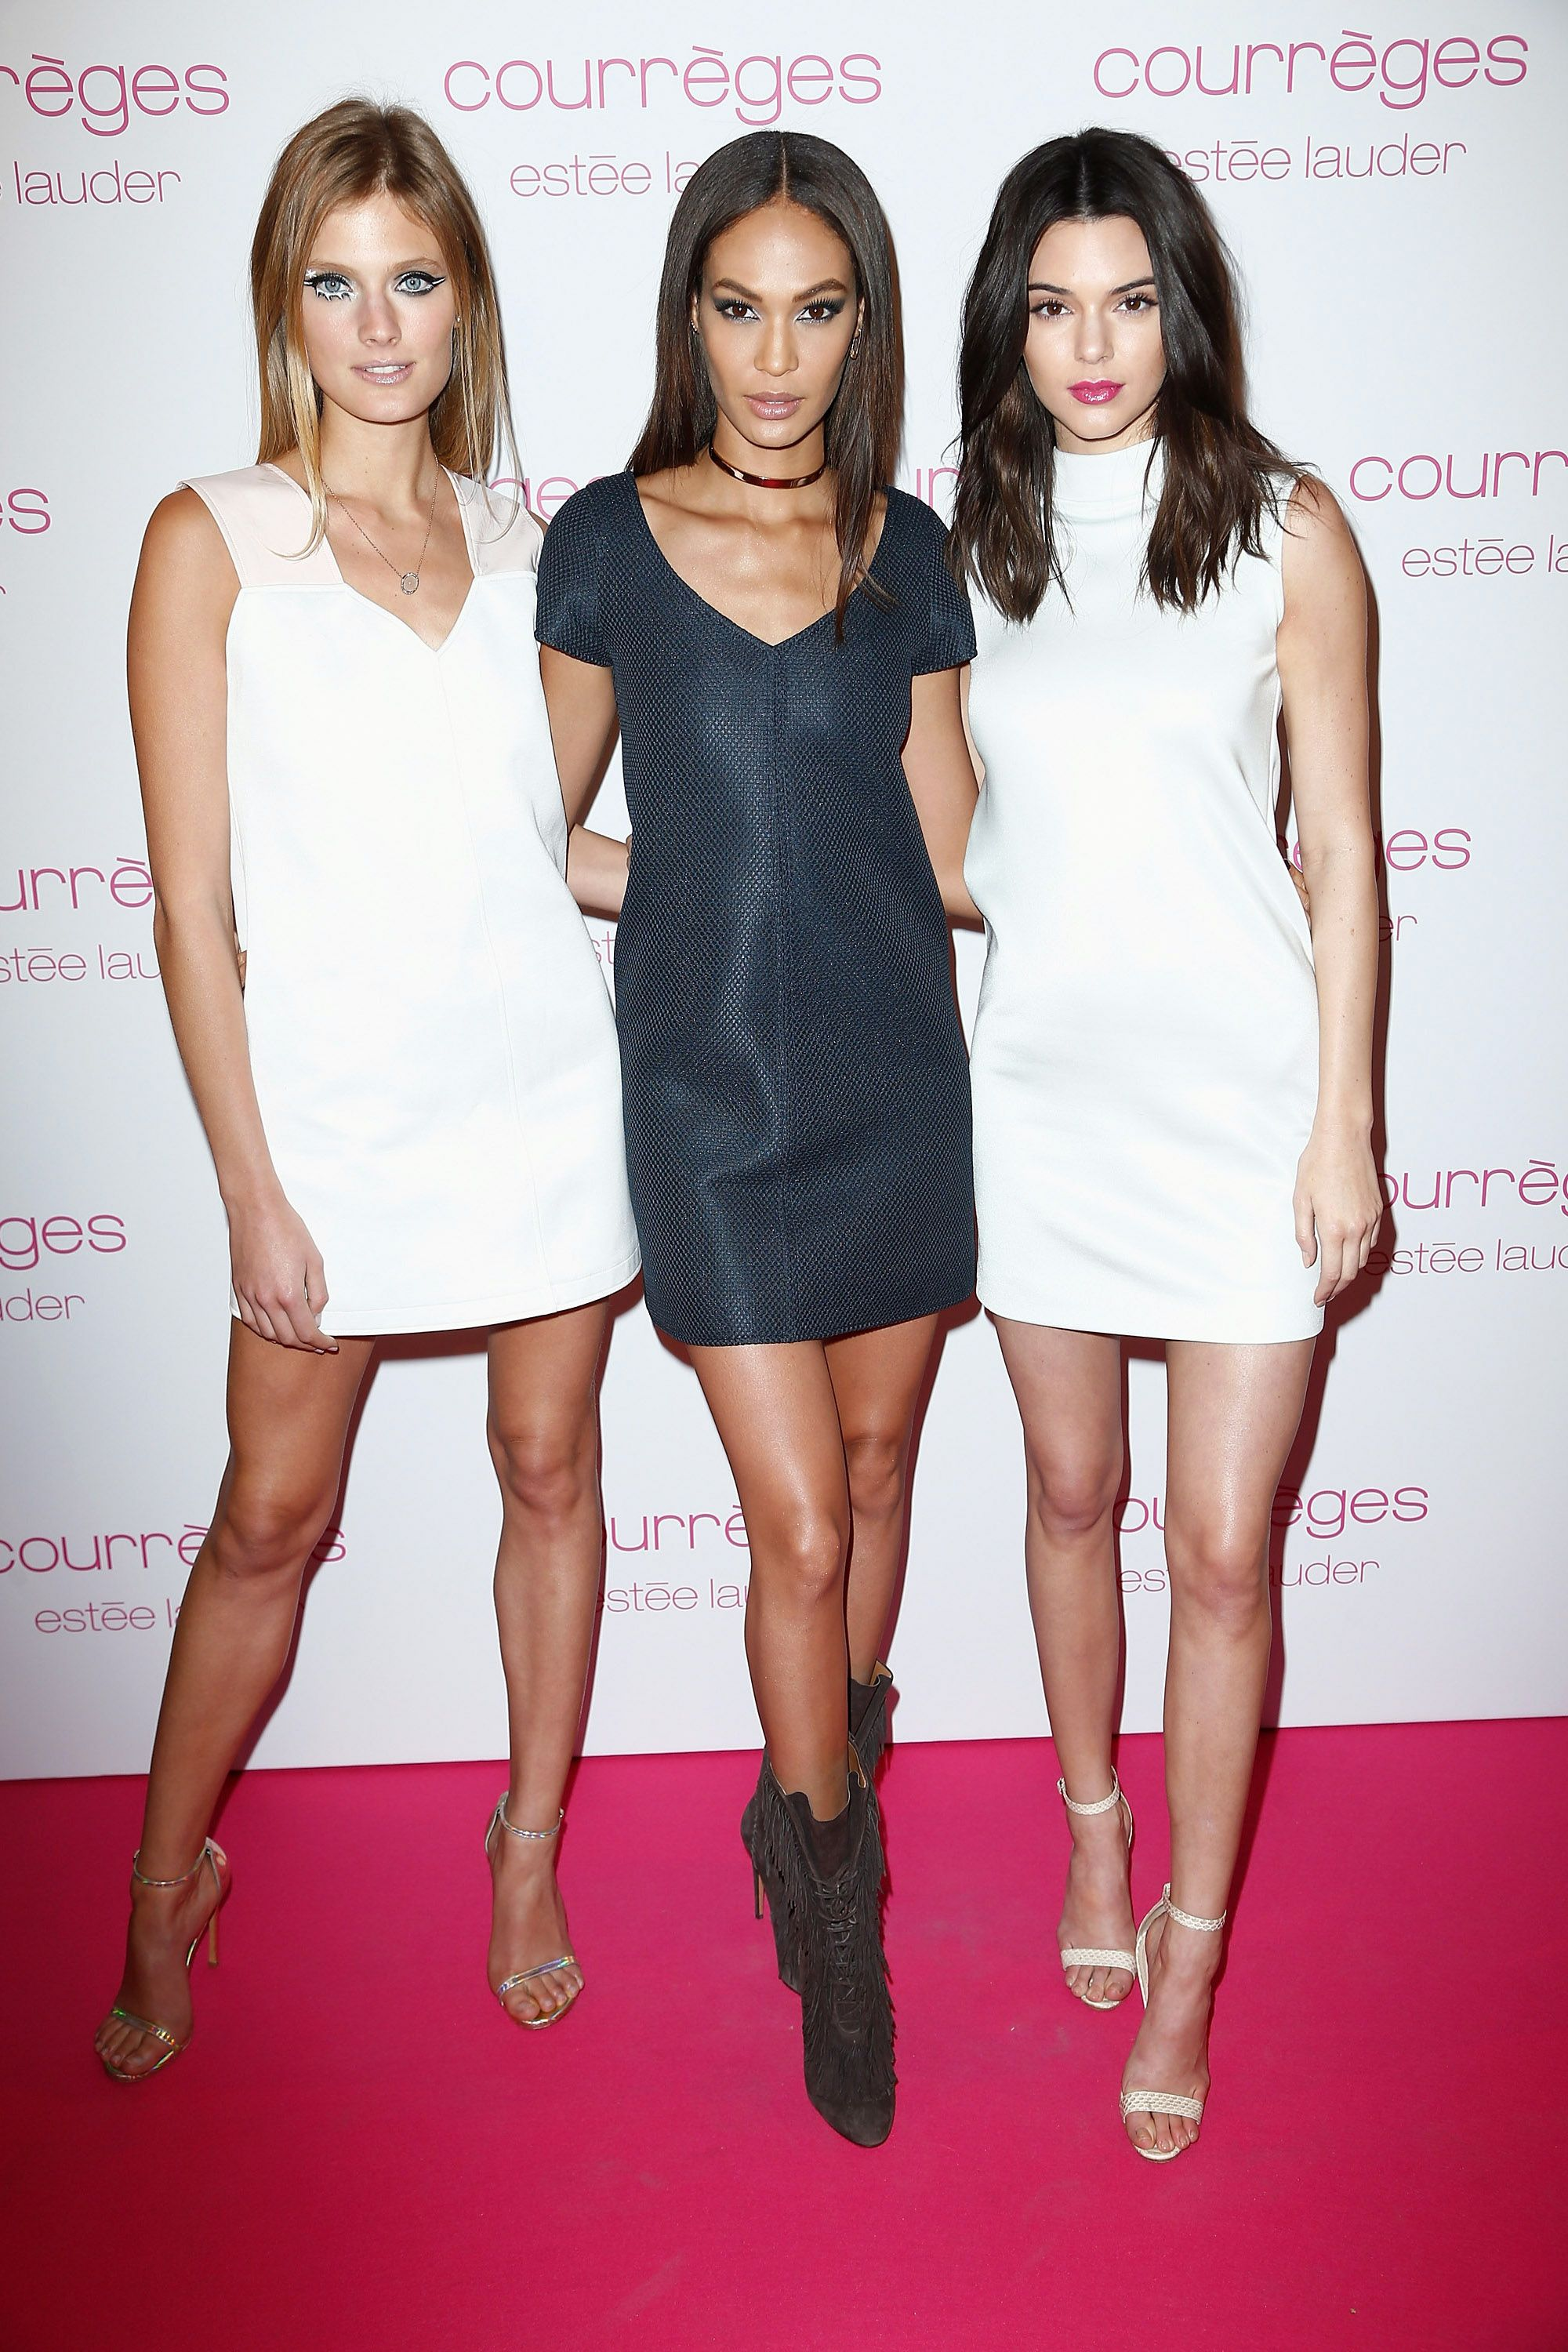 Constance Jablonski, Joan Smalls and Kendall Jenner